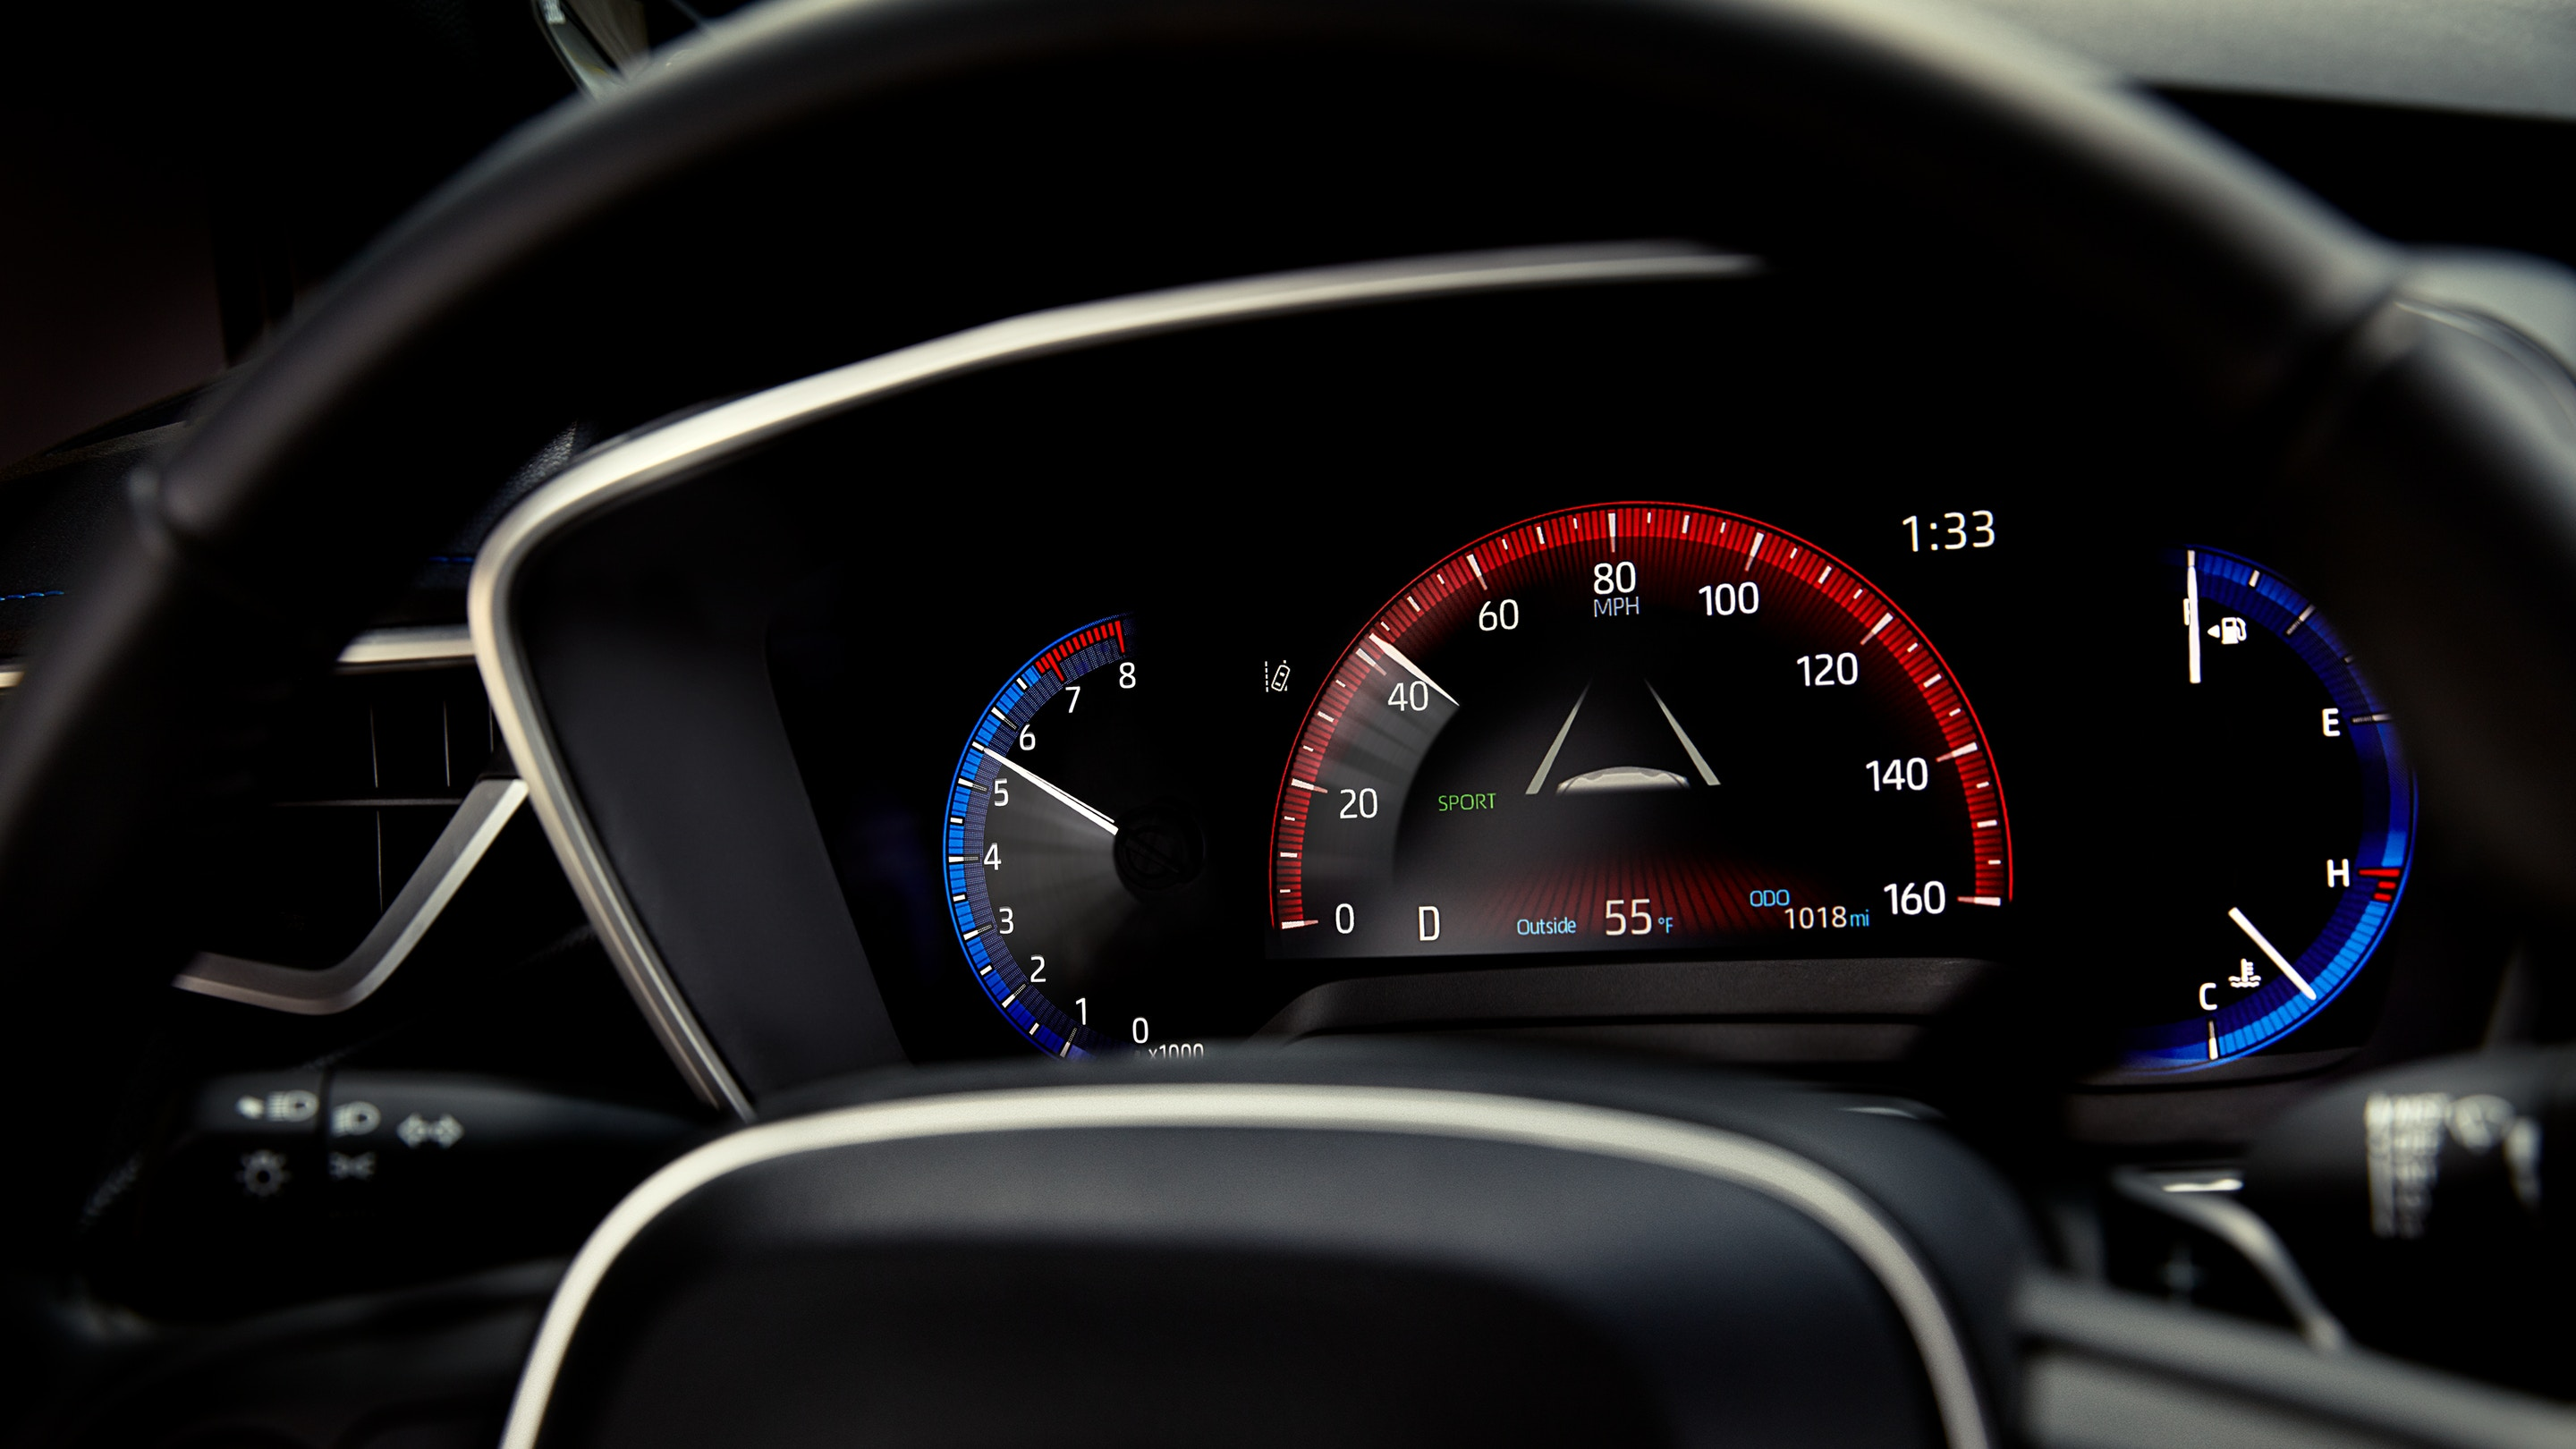 Instrument Cluster of the 2020 Corolla